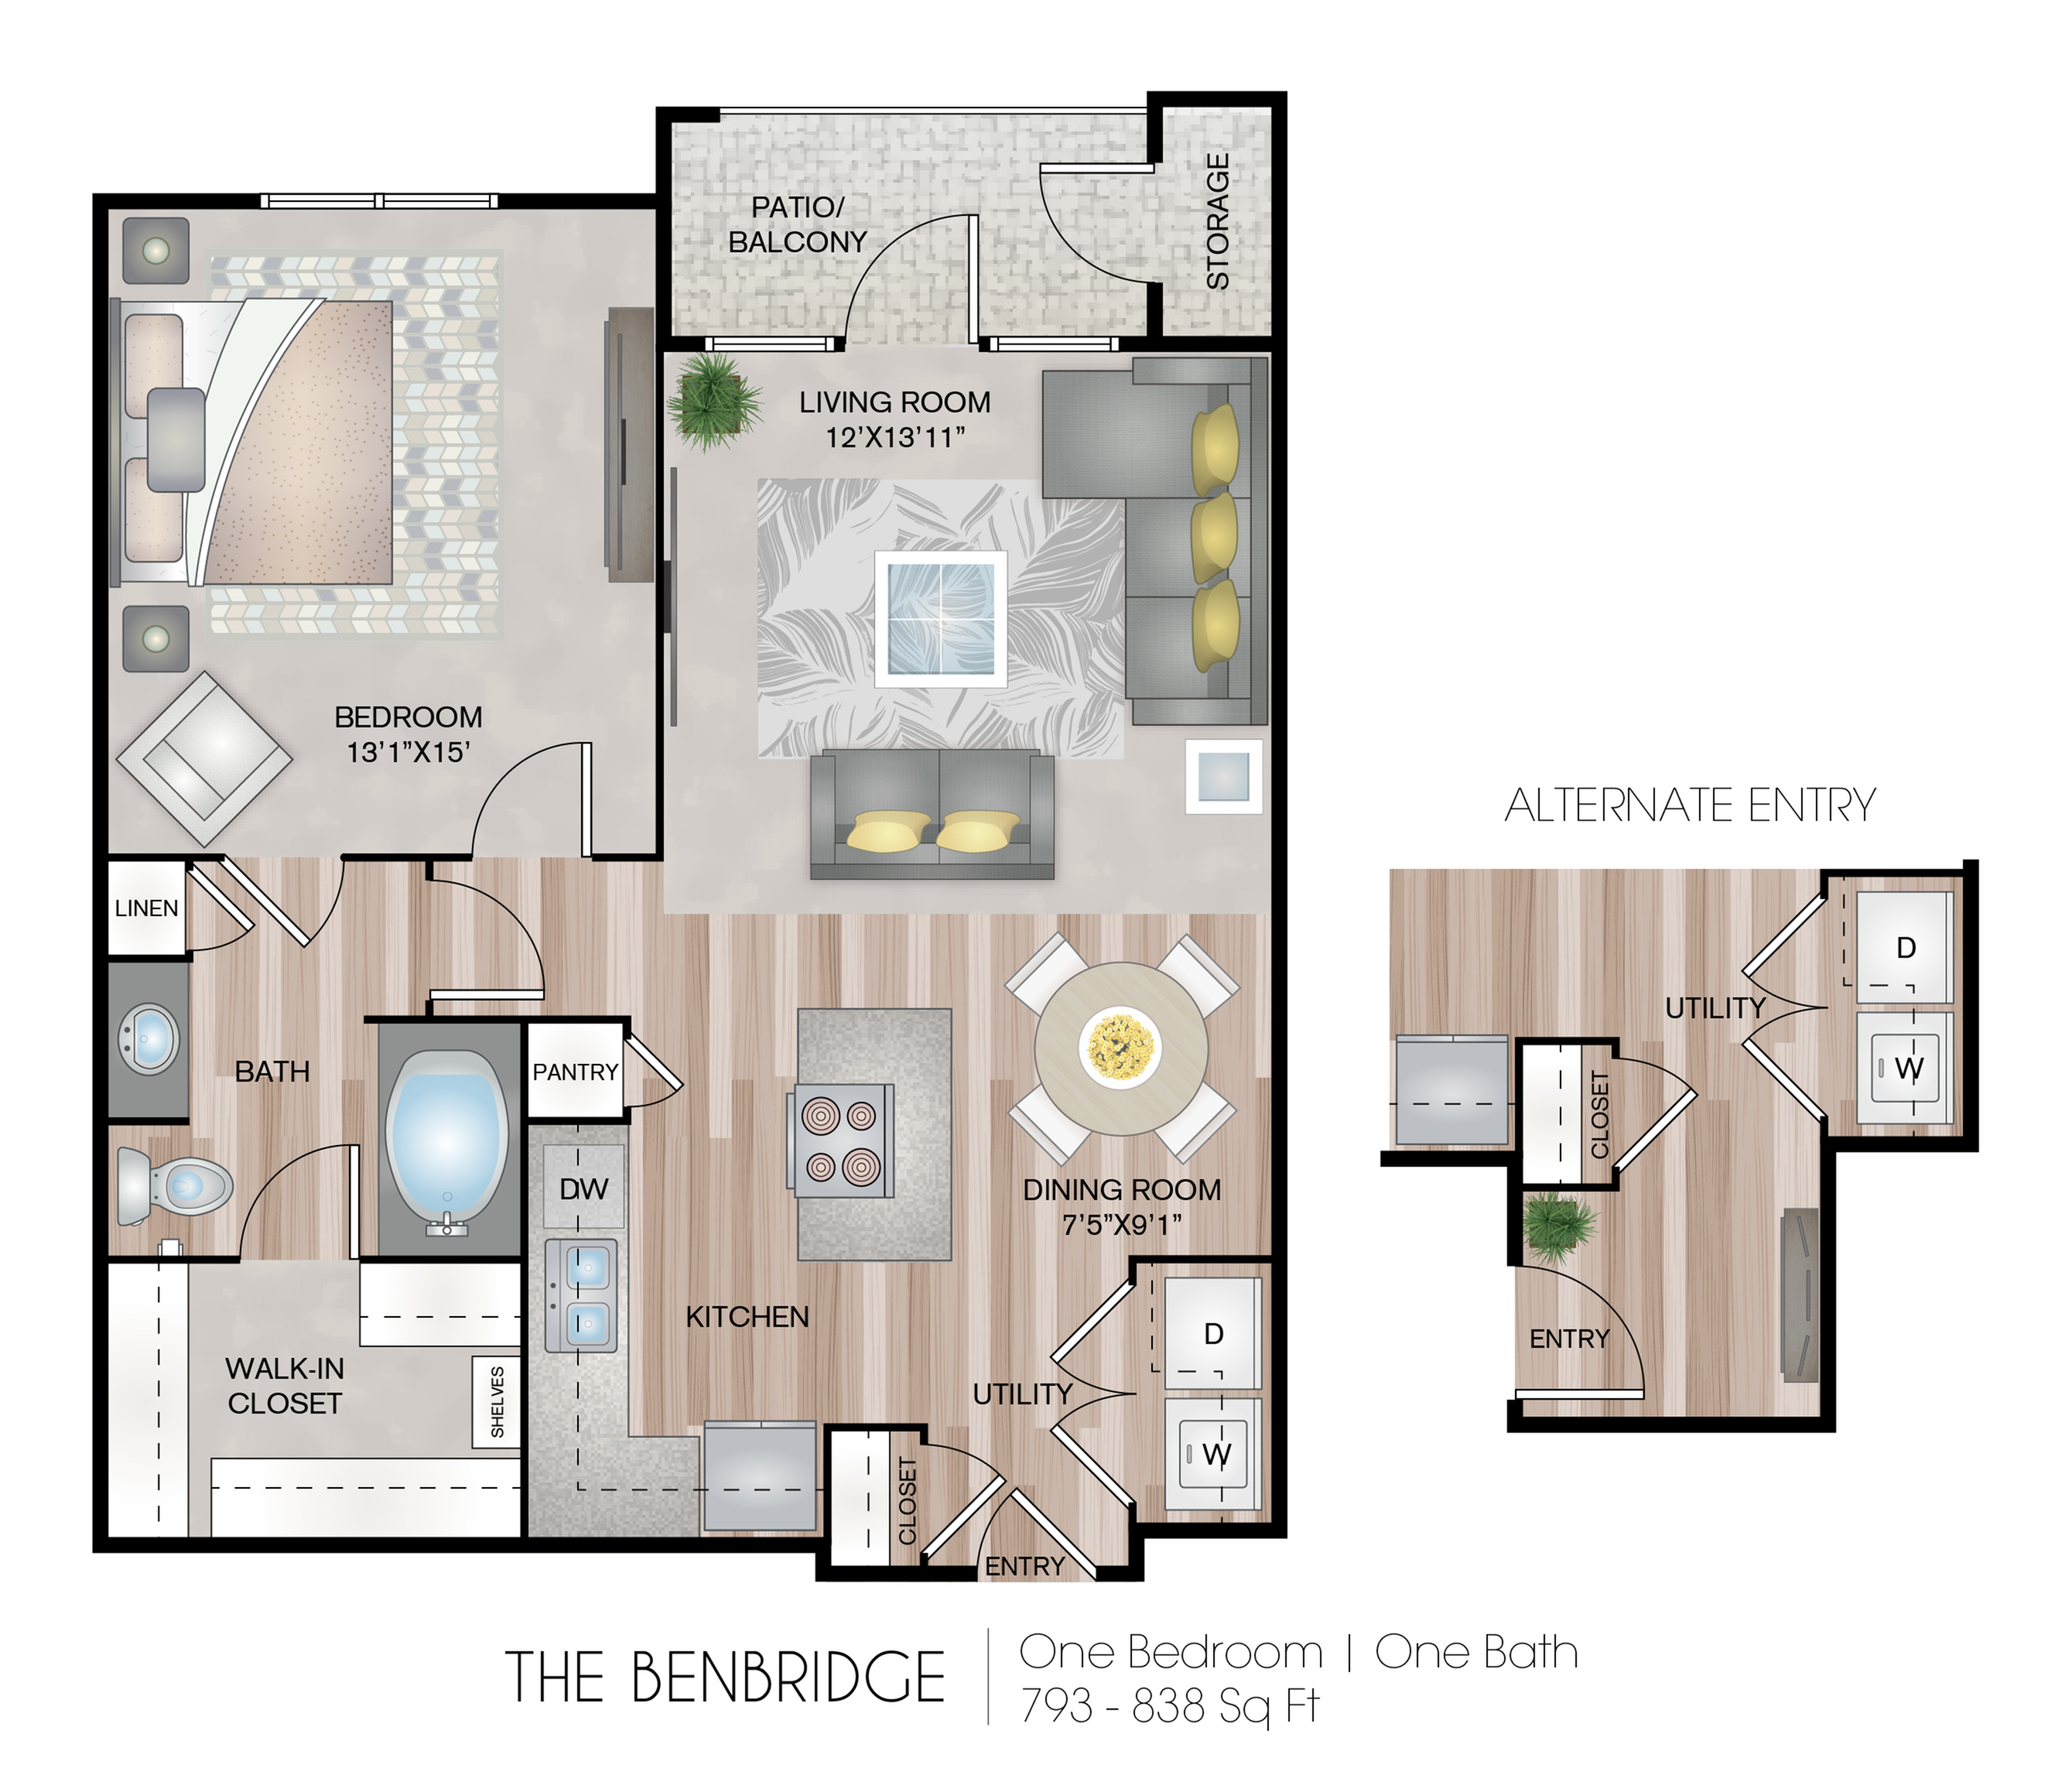 793 - 838 Square Feet (depending on entryway)